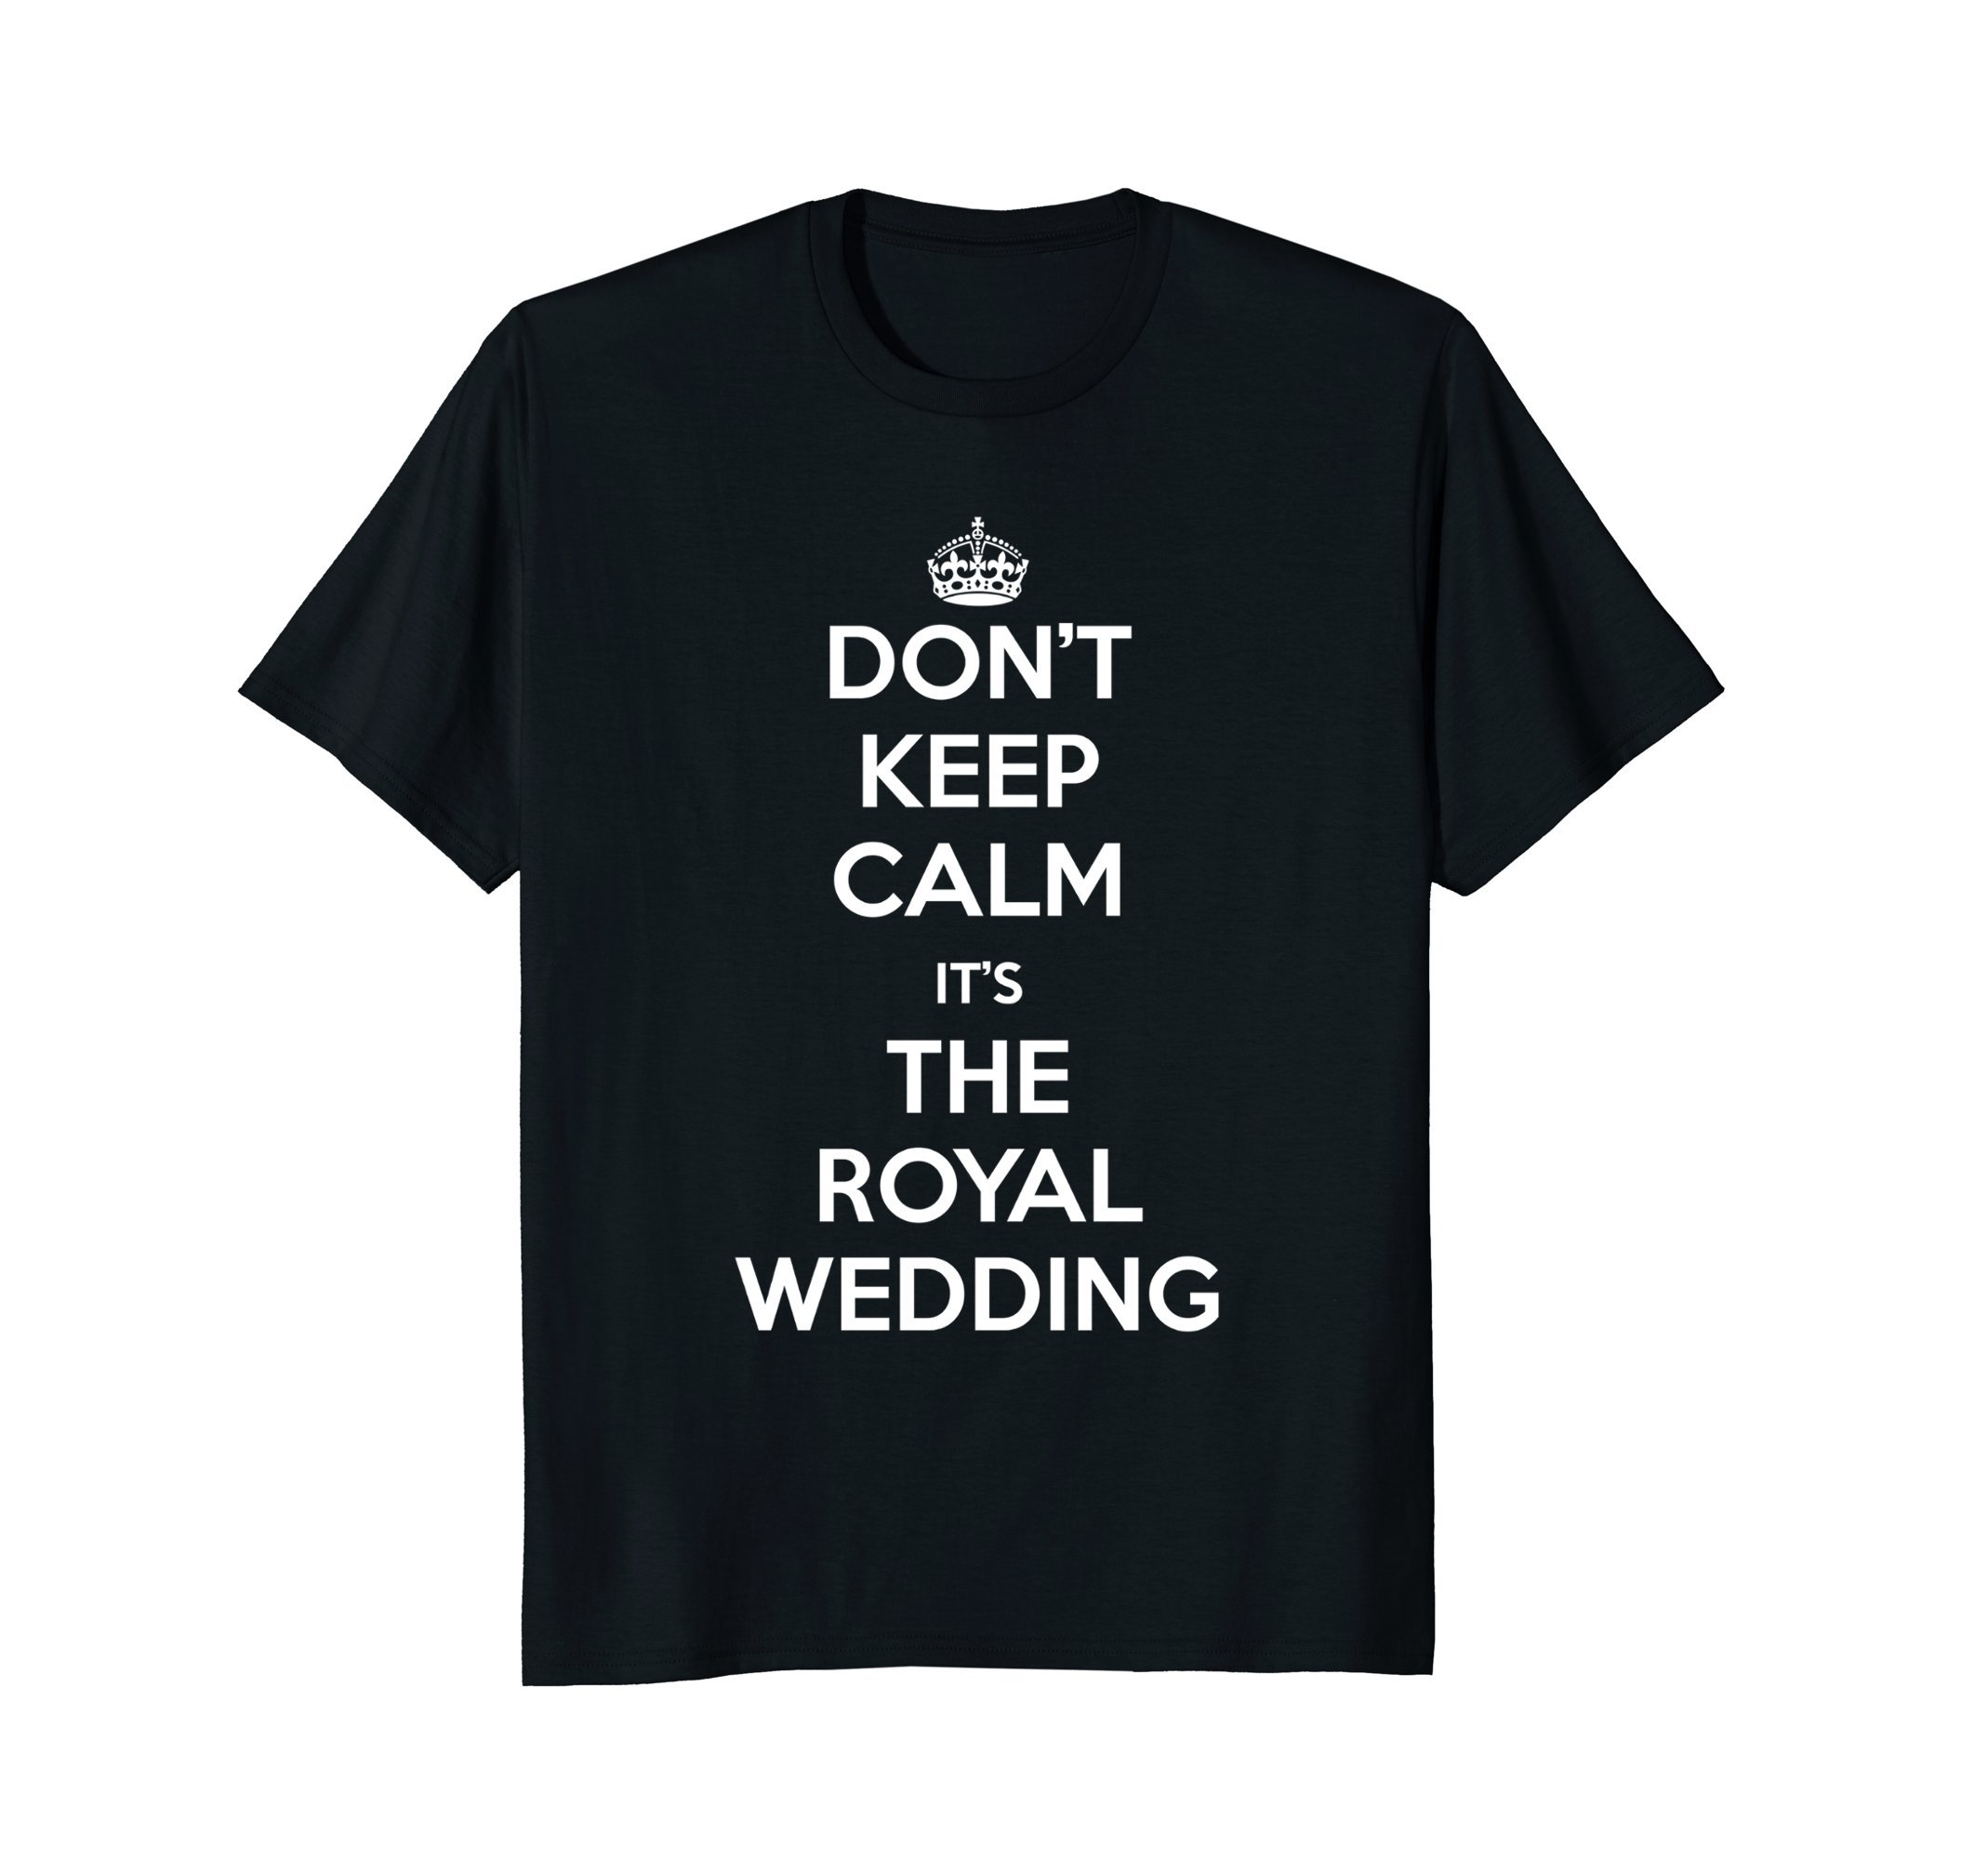 Don't Keep Calm, It's the Royal Wedding